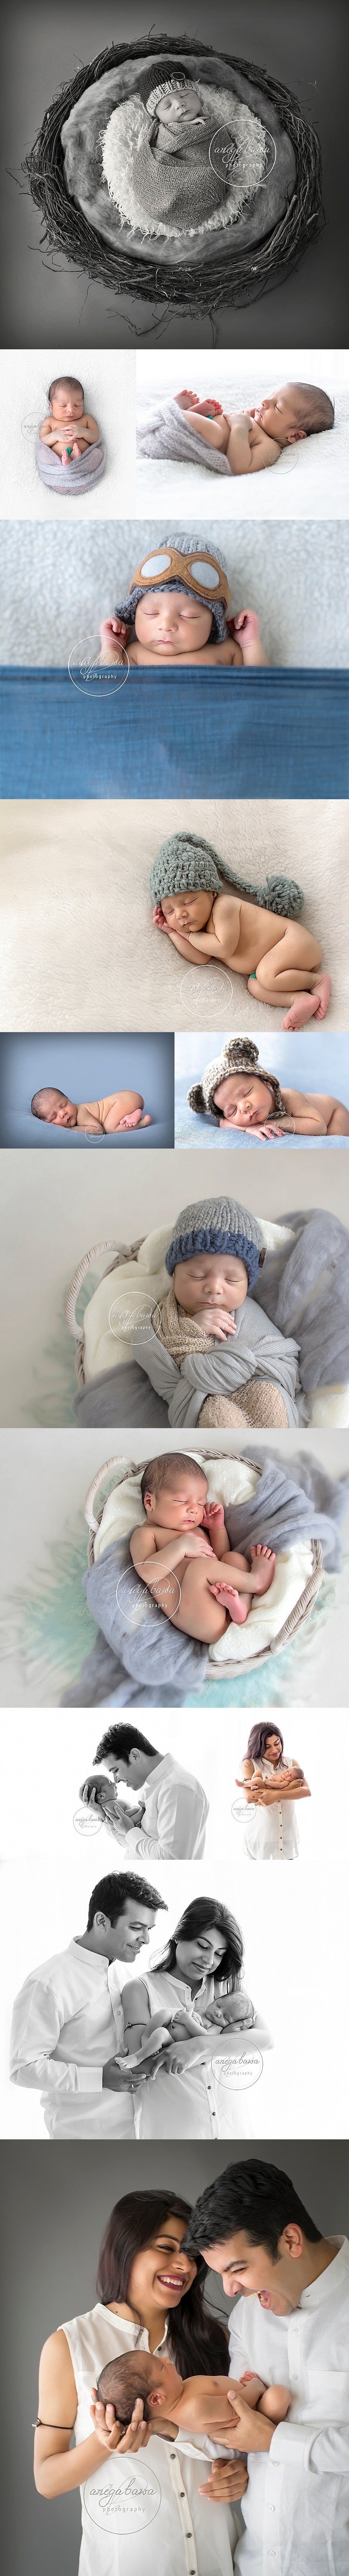 Newborn Photographer in Delhi - Session of a 6 day old baby boy